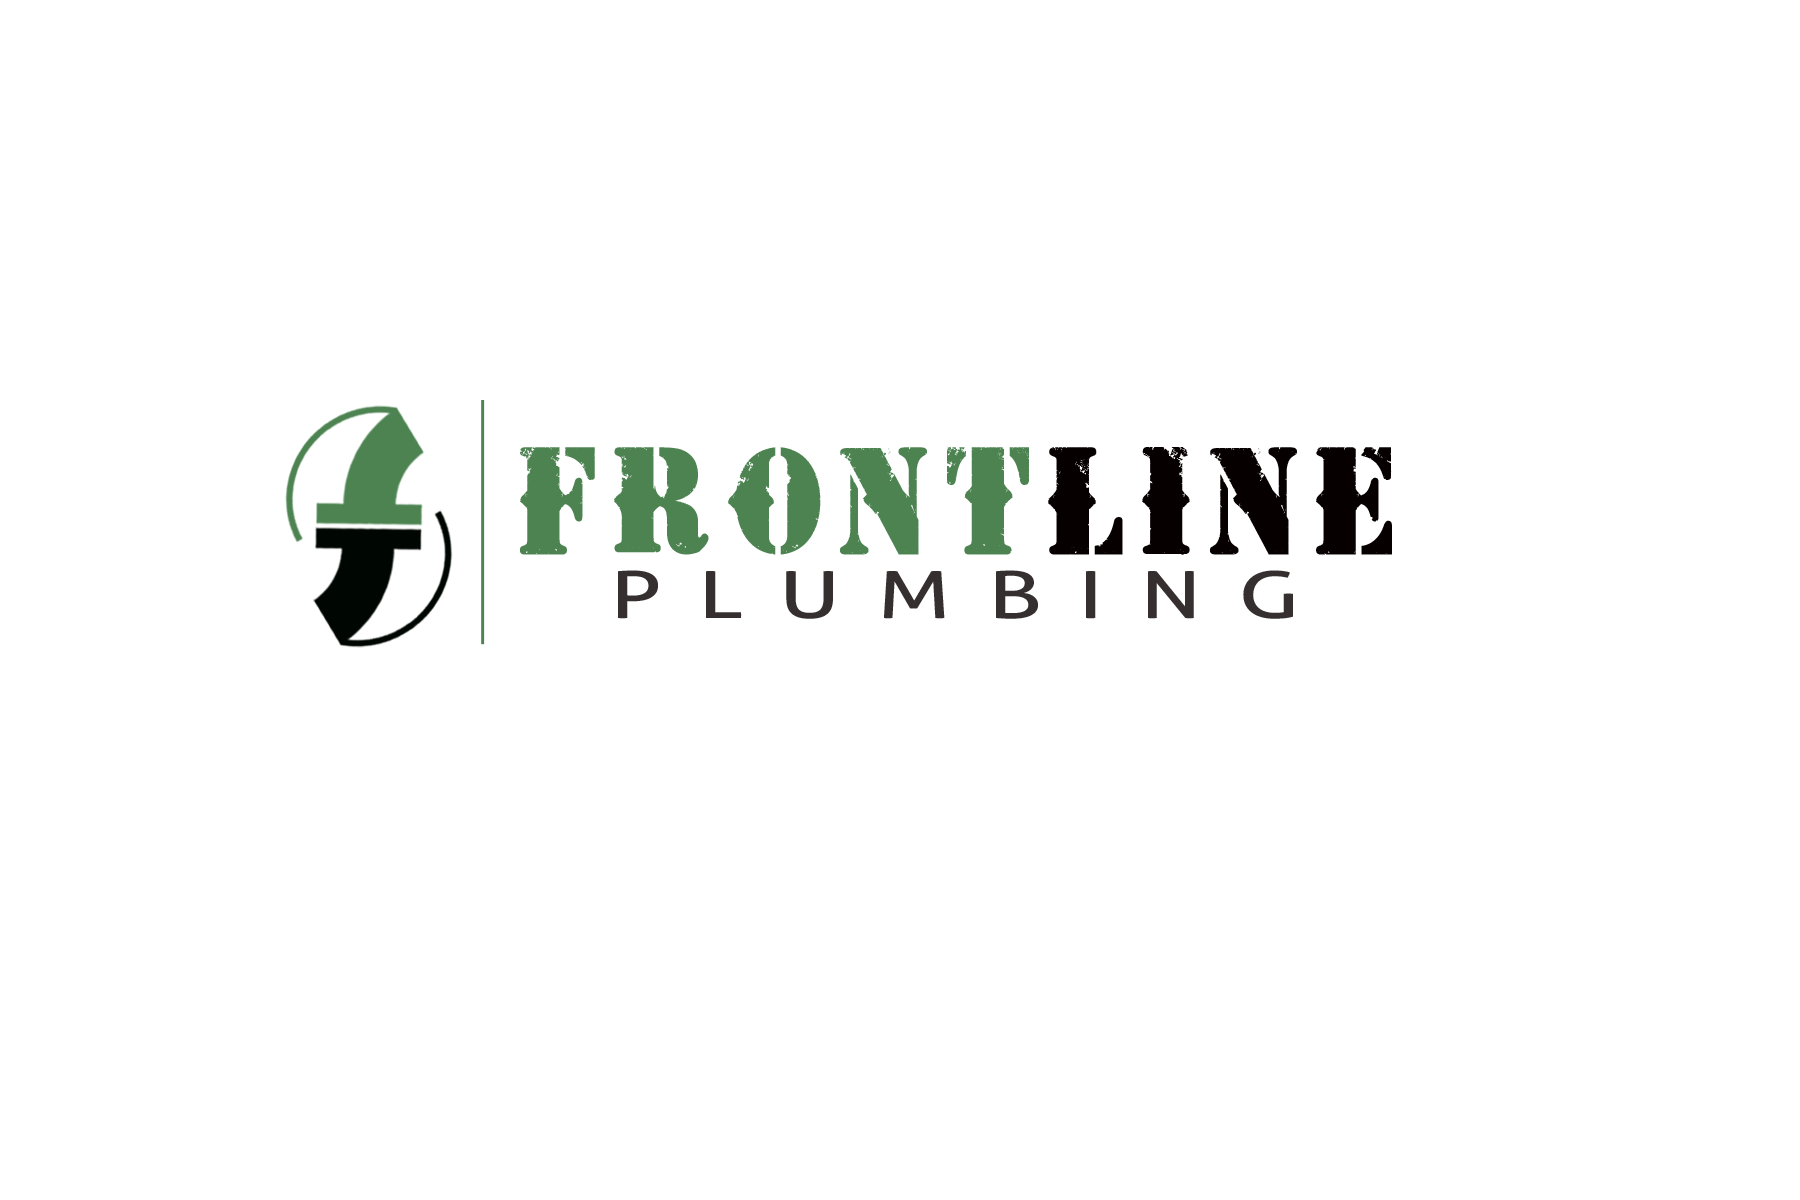 Logo Design by Golden_Hand - Entry No. 59 in the Logo Design Contest Fun Logo Design for Front Line Plumbing.